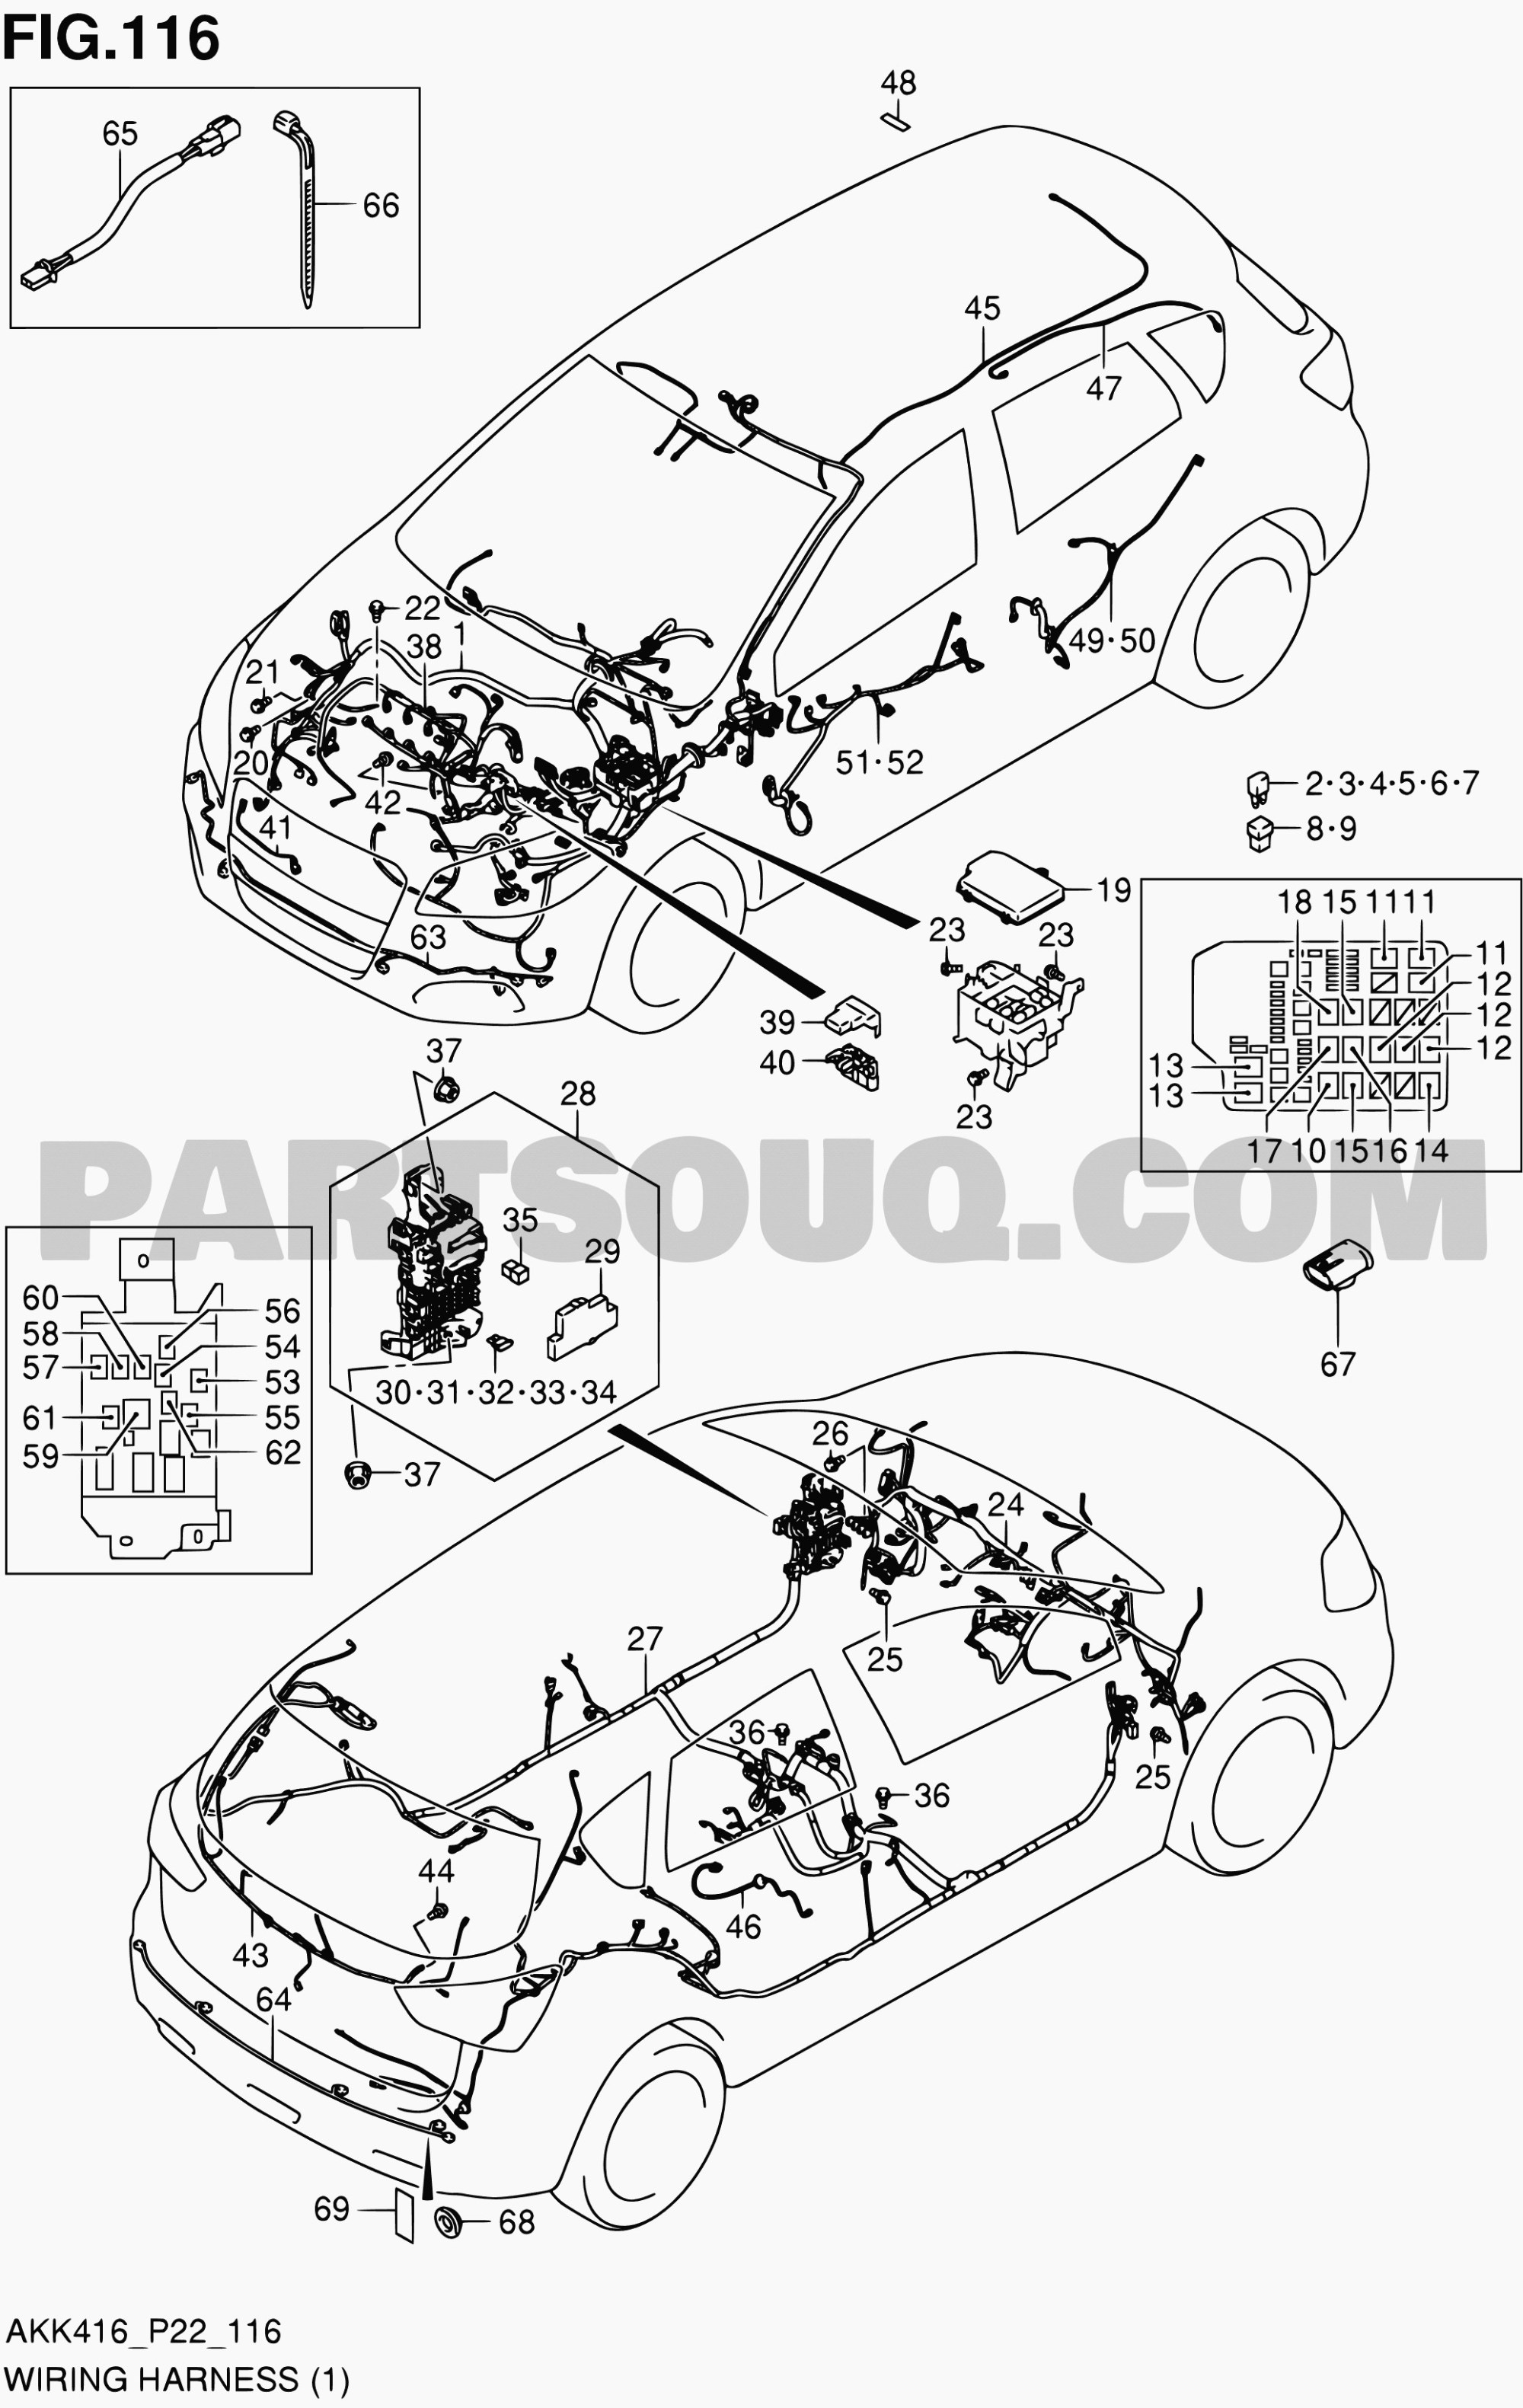 hight resolution of 2006 scion tc engine diagram exterior car parts diagram 116 wiring harness m16a lhd sx4 m16a